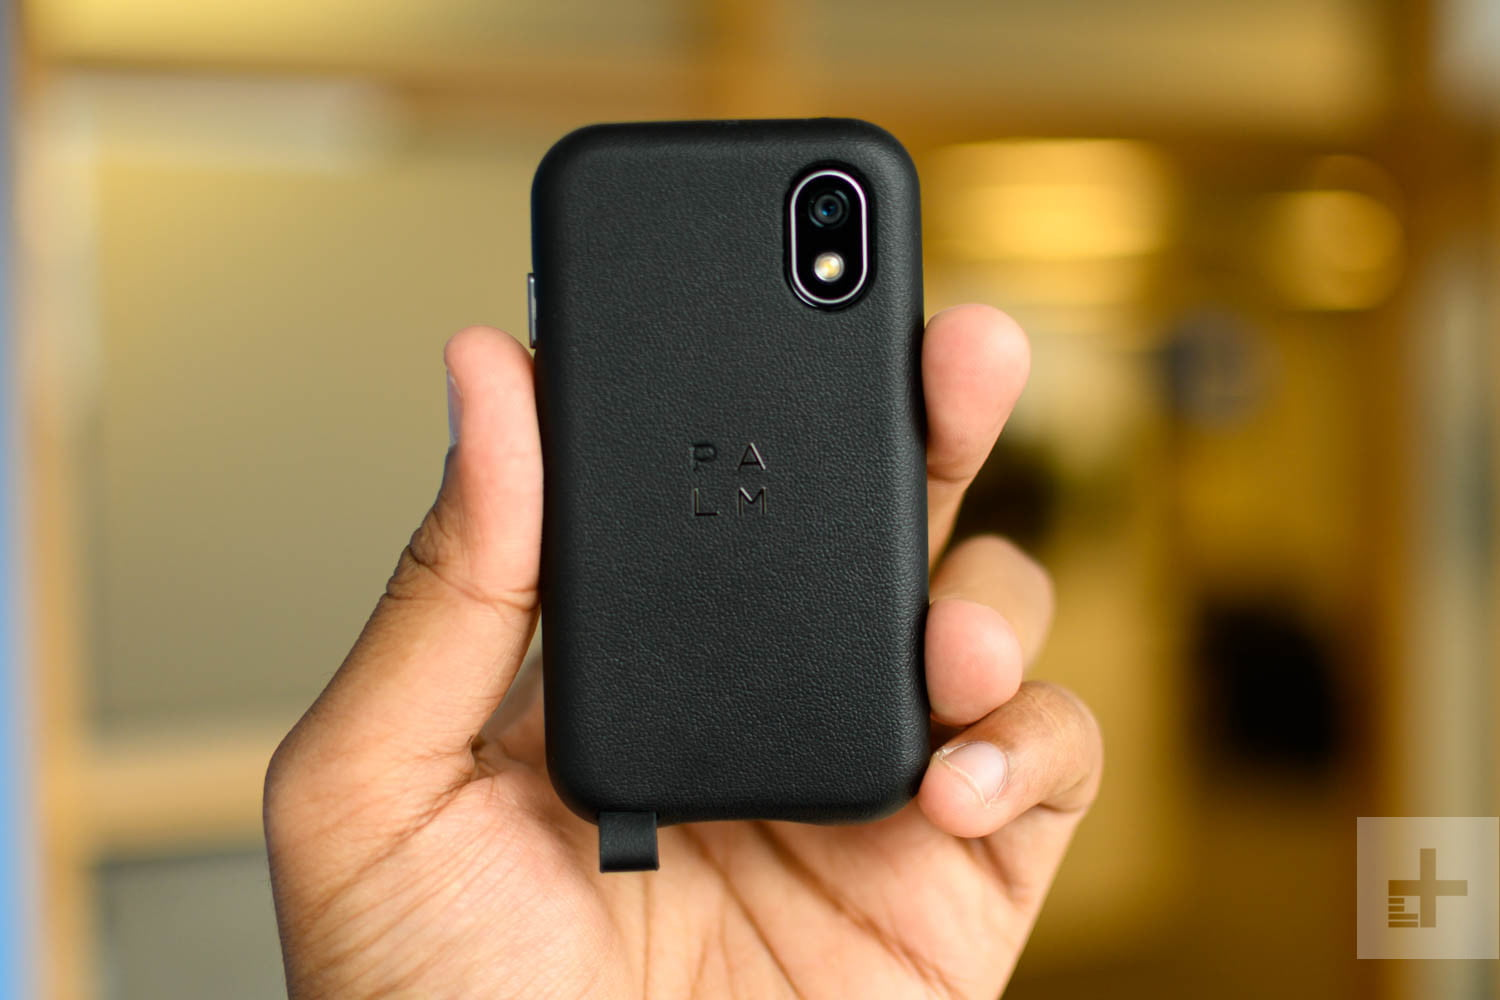 Palm: Stand-alone or Connected, Here's Everything You Need